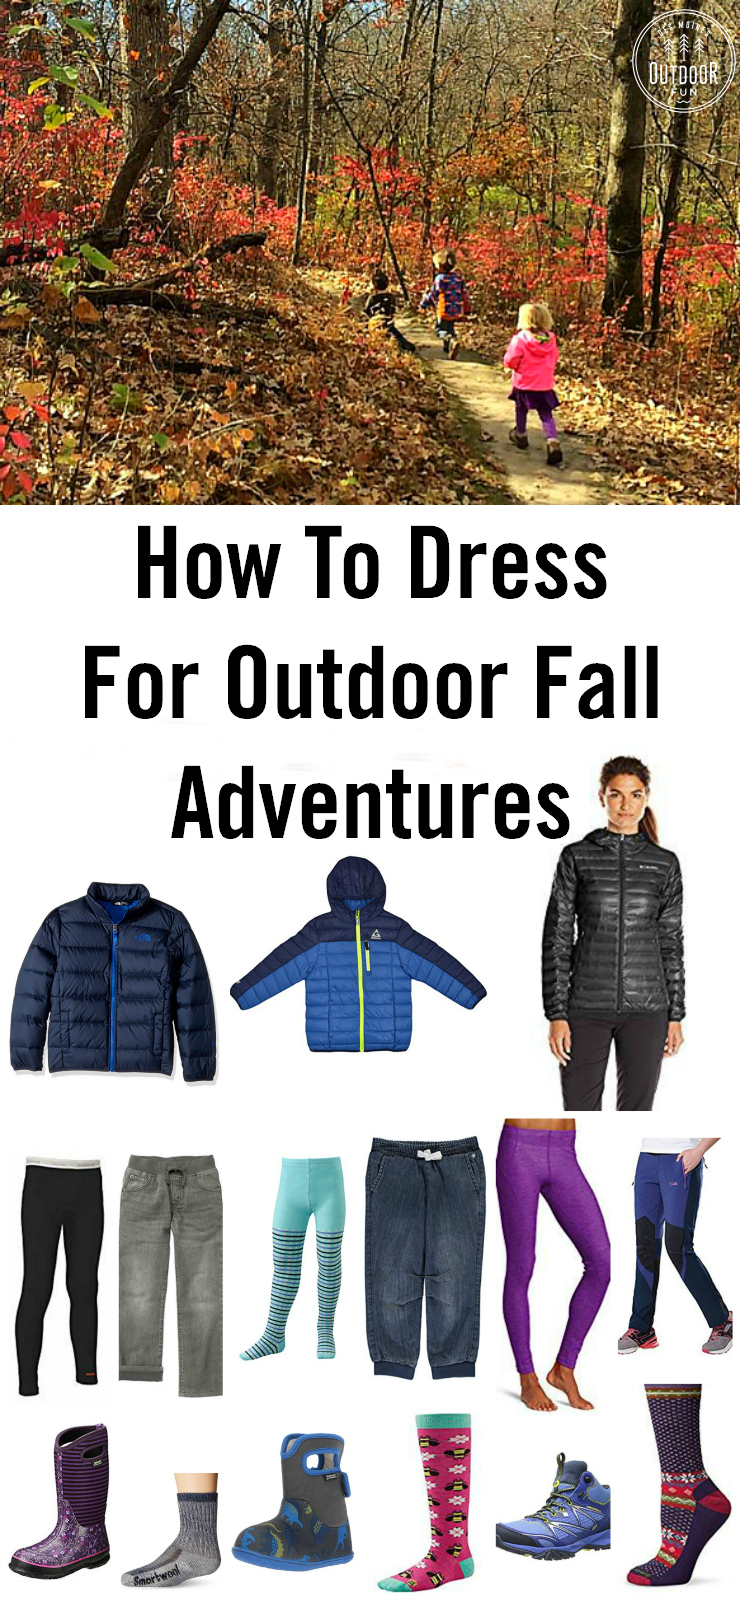 Check out these tips and product links for how to dress kids and adults to stay warm (but not too warm!) in fall weather. Fall hiking with kids can be fun if everyone is dressed right! #hikingwithkids #hiking #hikingtips #hikinggear